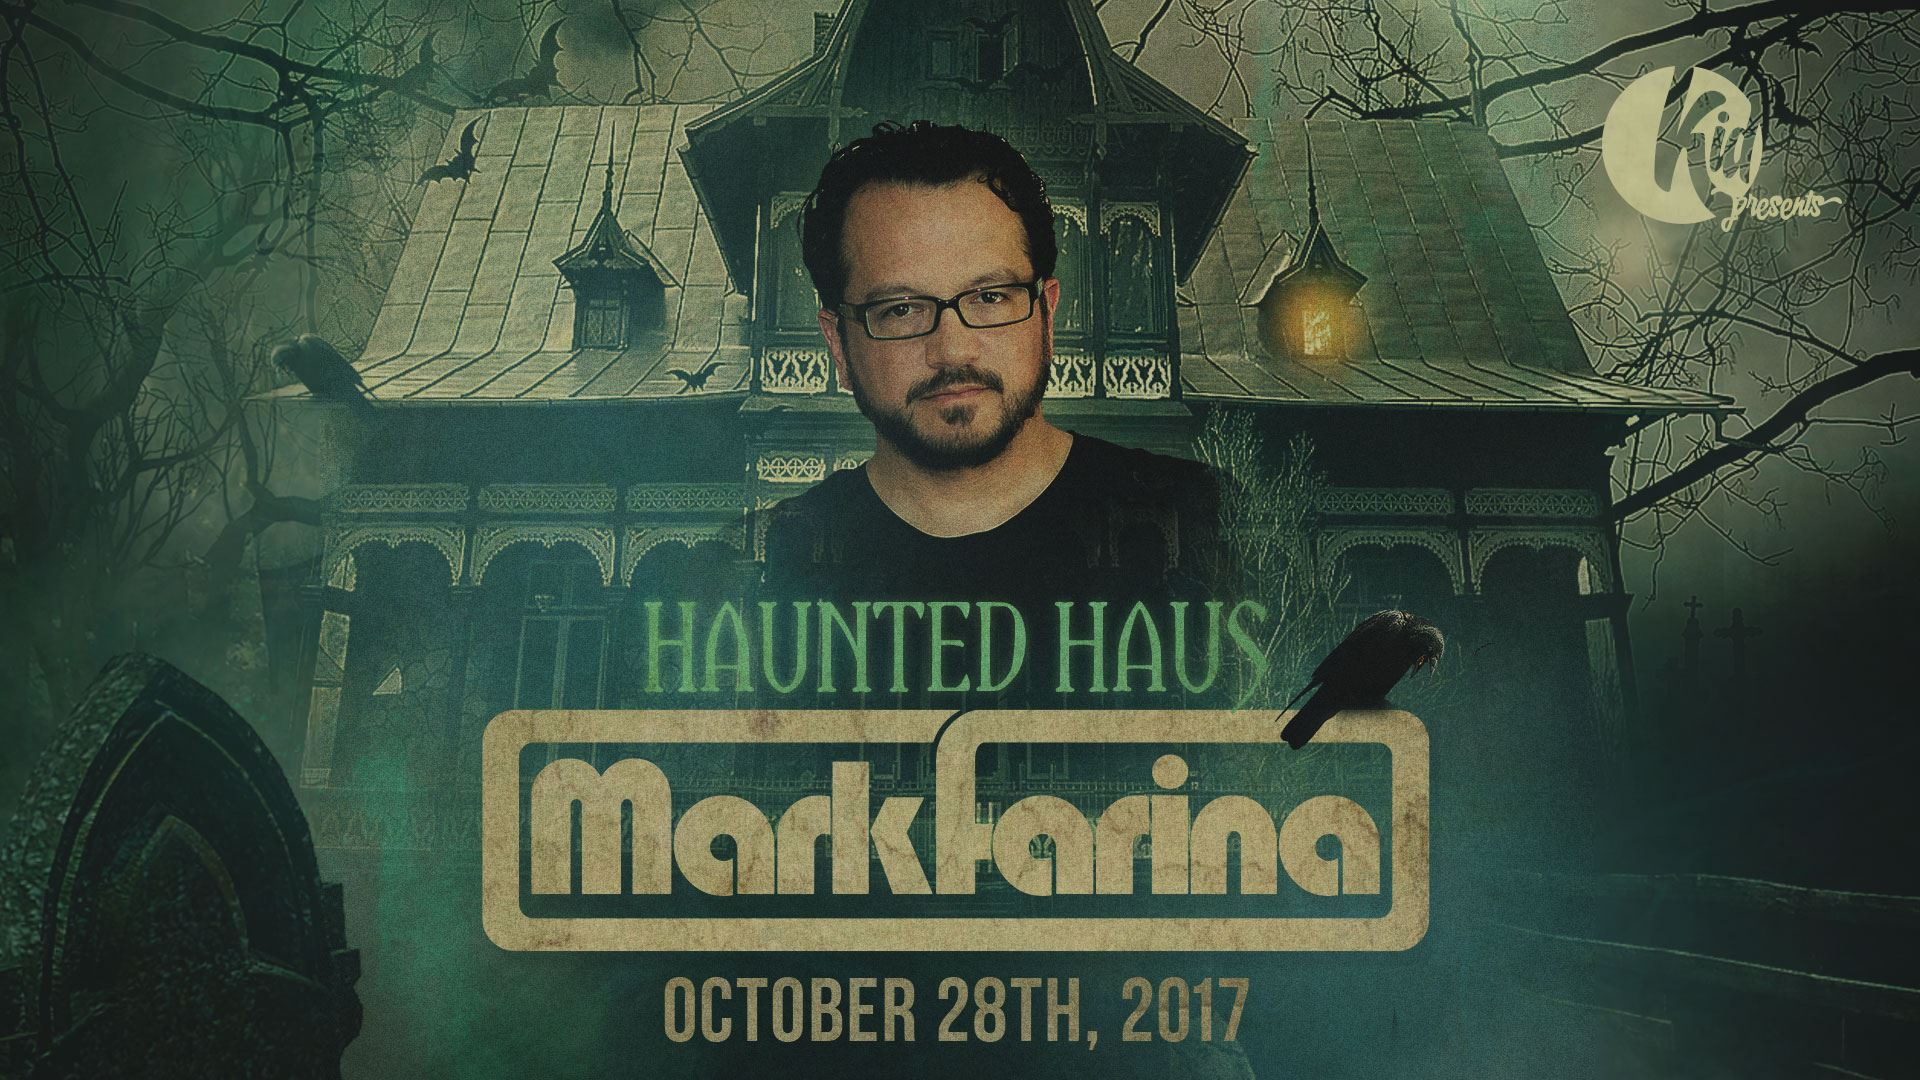 KID Presents Haunted Haus w/ Mark Farina